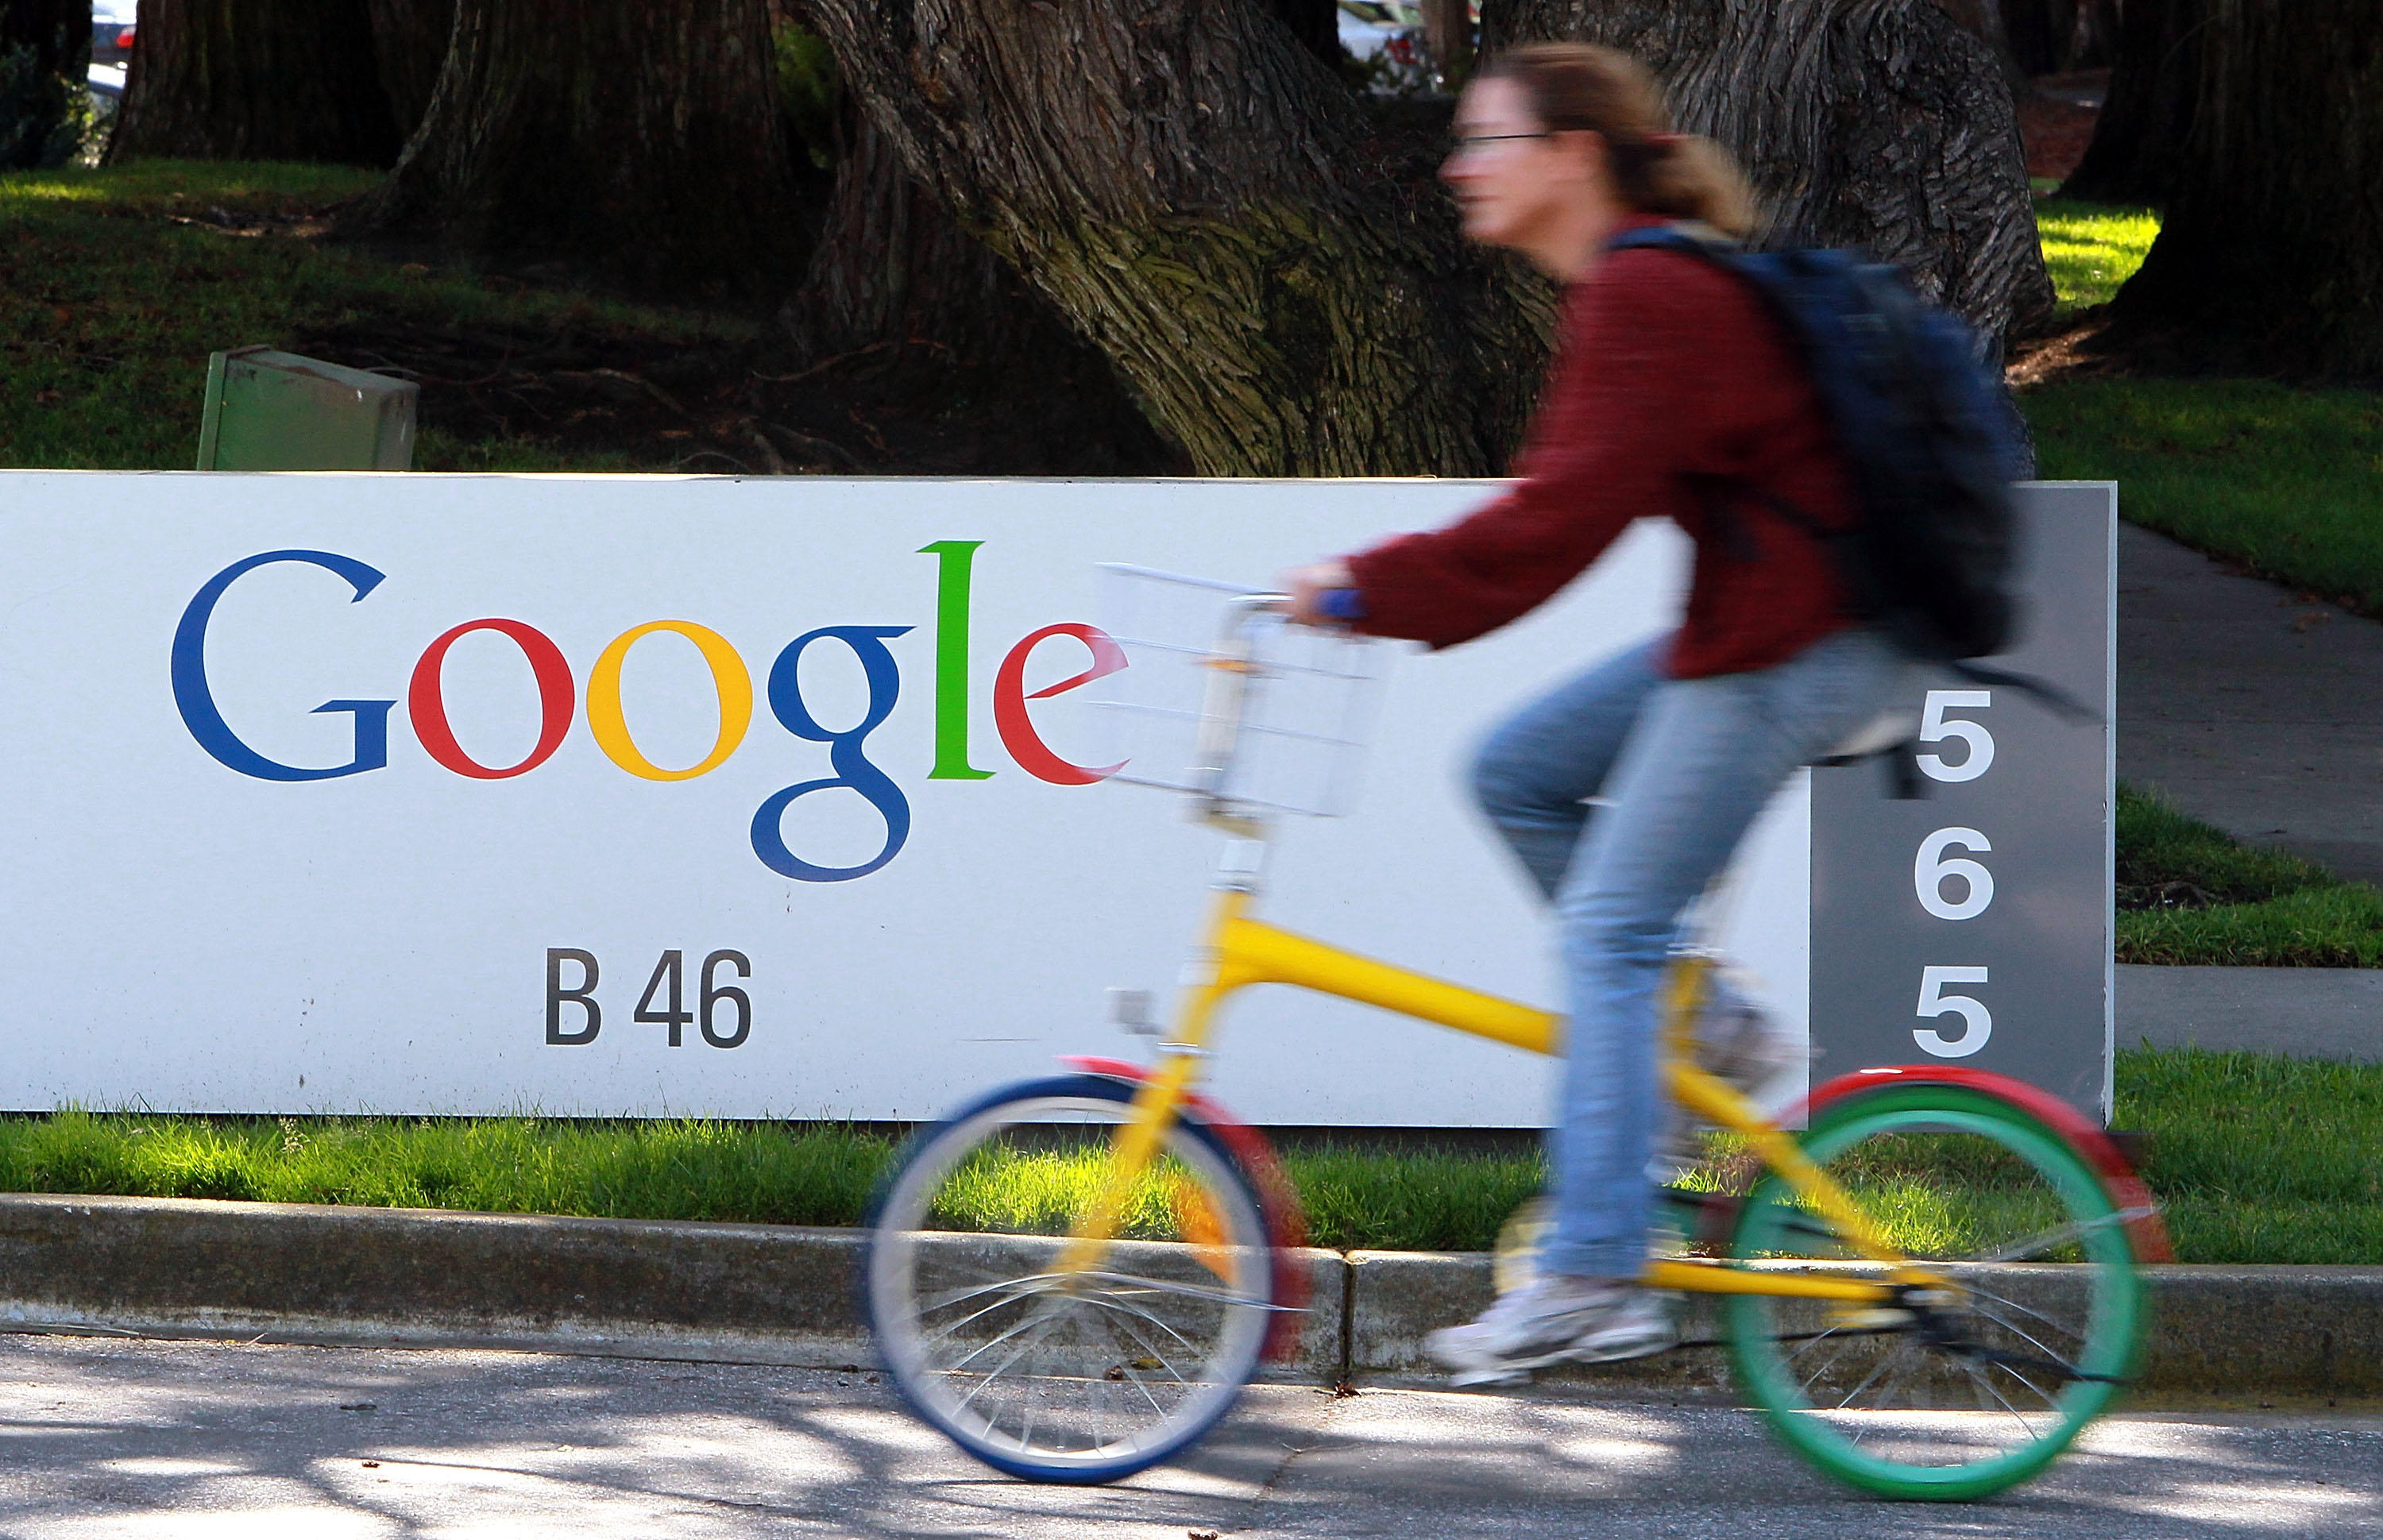 Cycling Routes And Directions Added To Google Maps